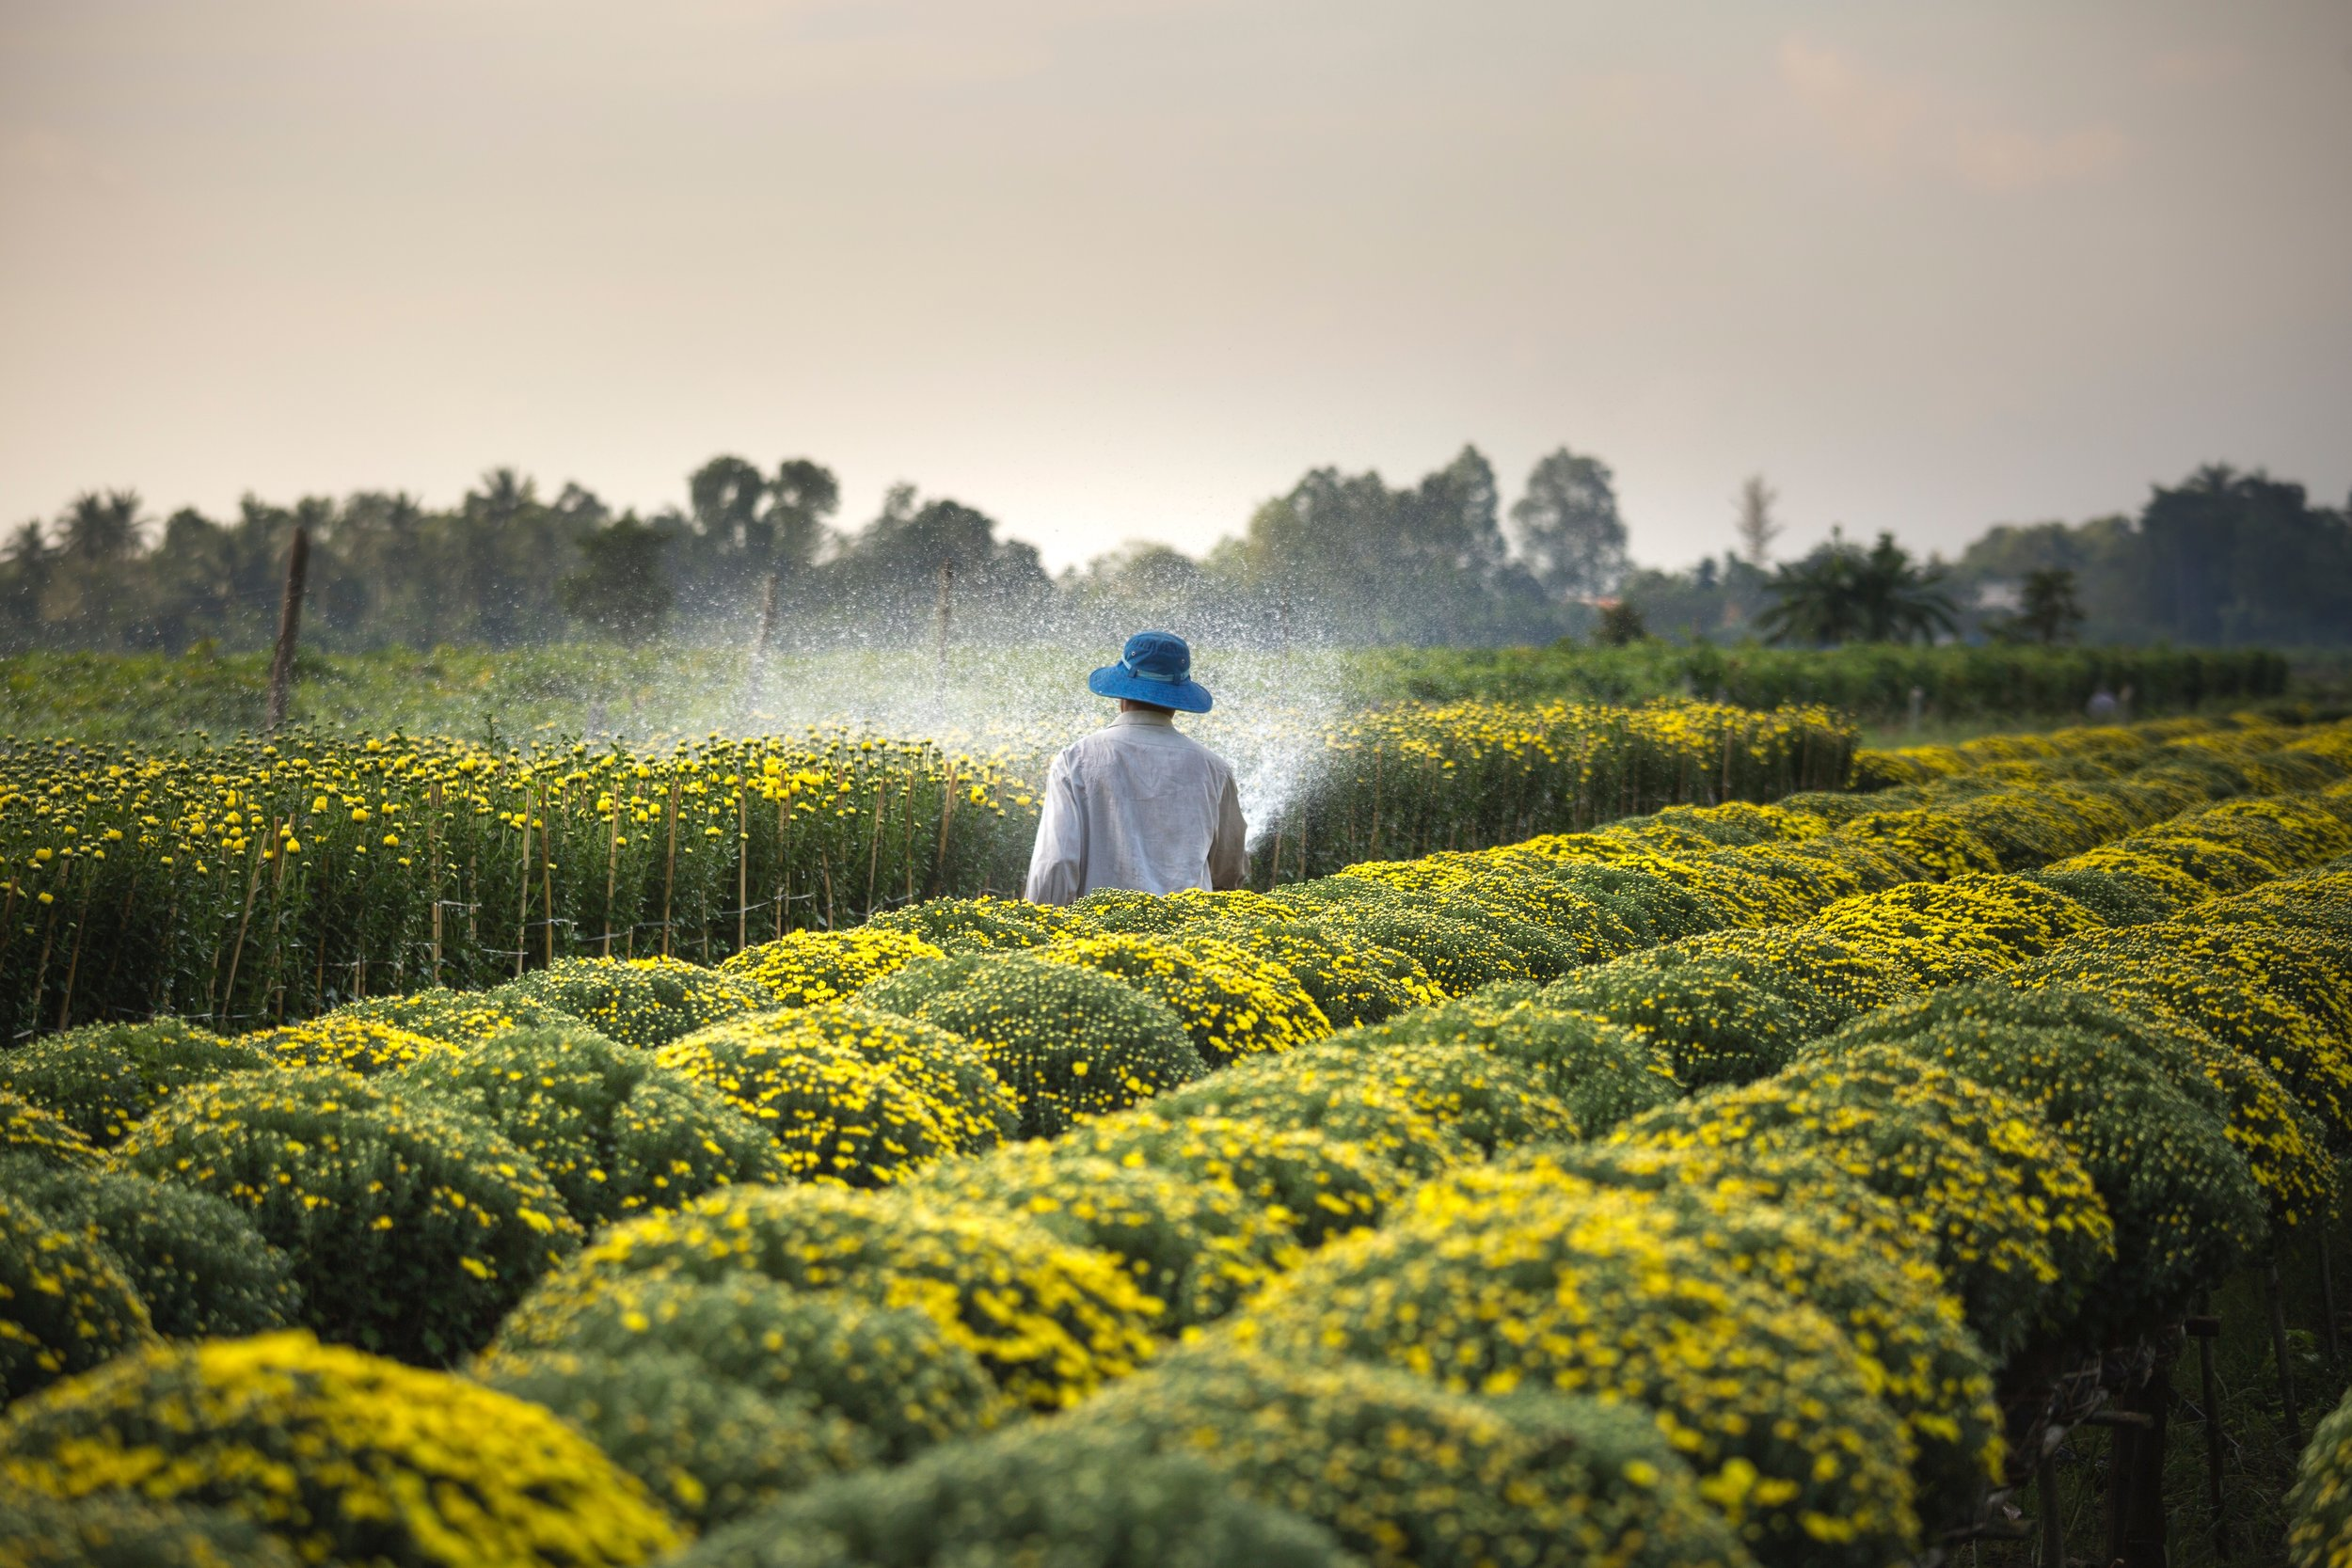 agriculture-close-up-countryside-2132250.jpg